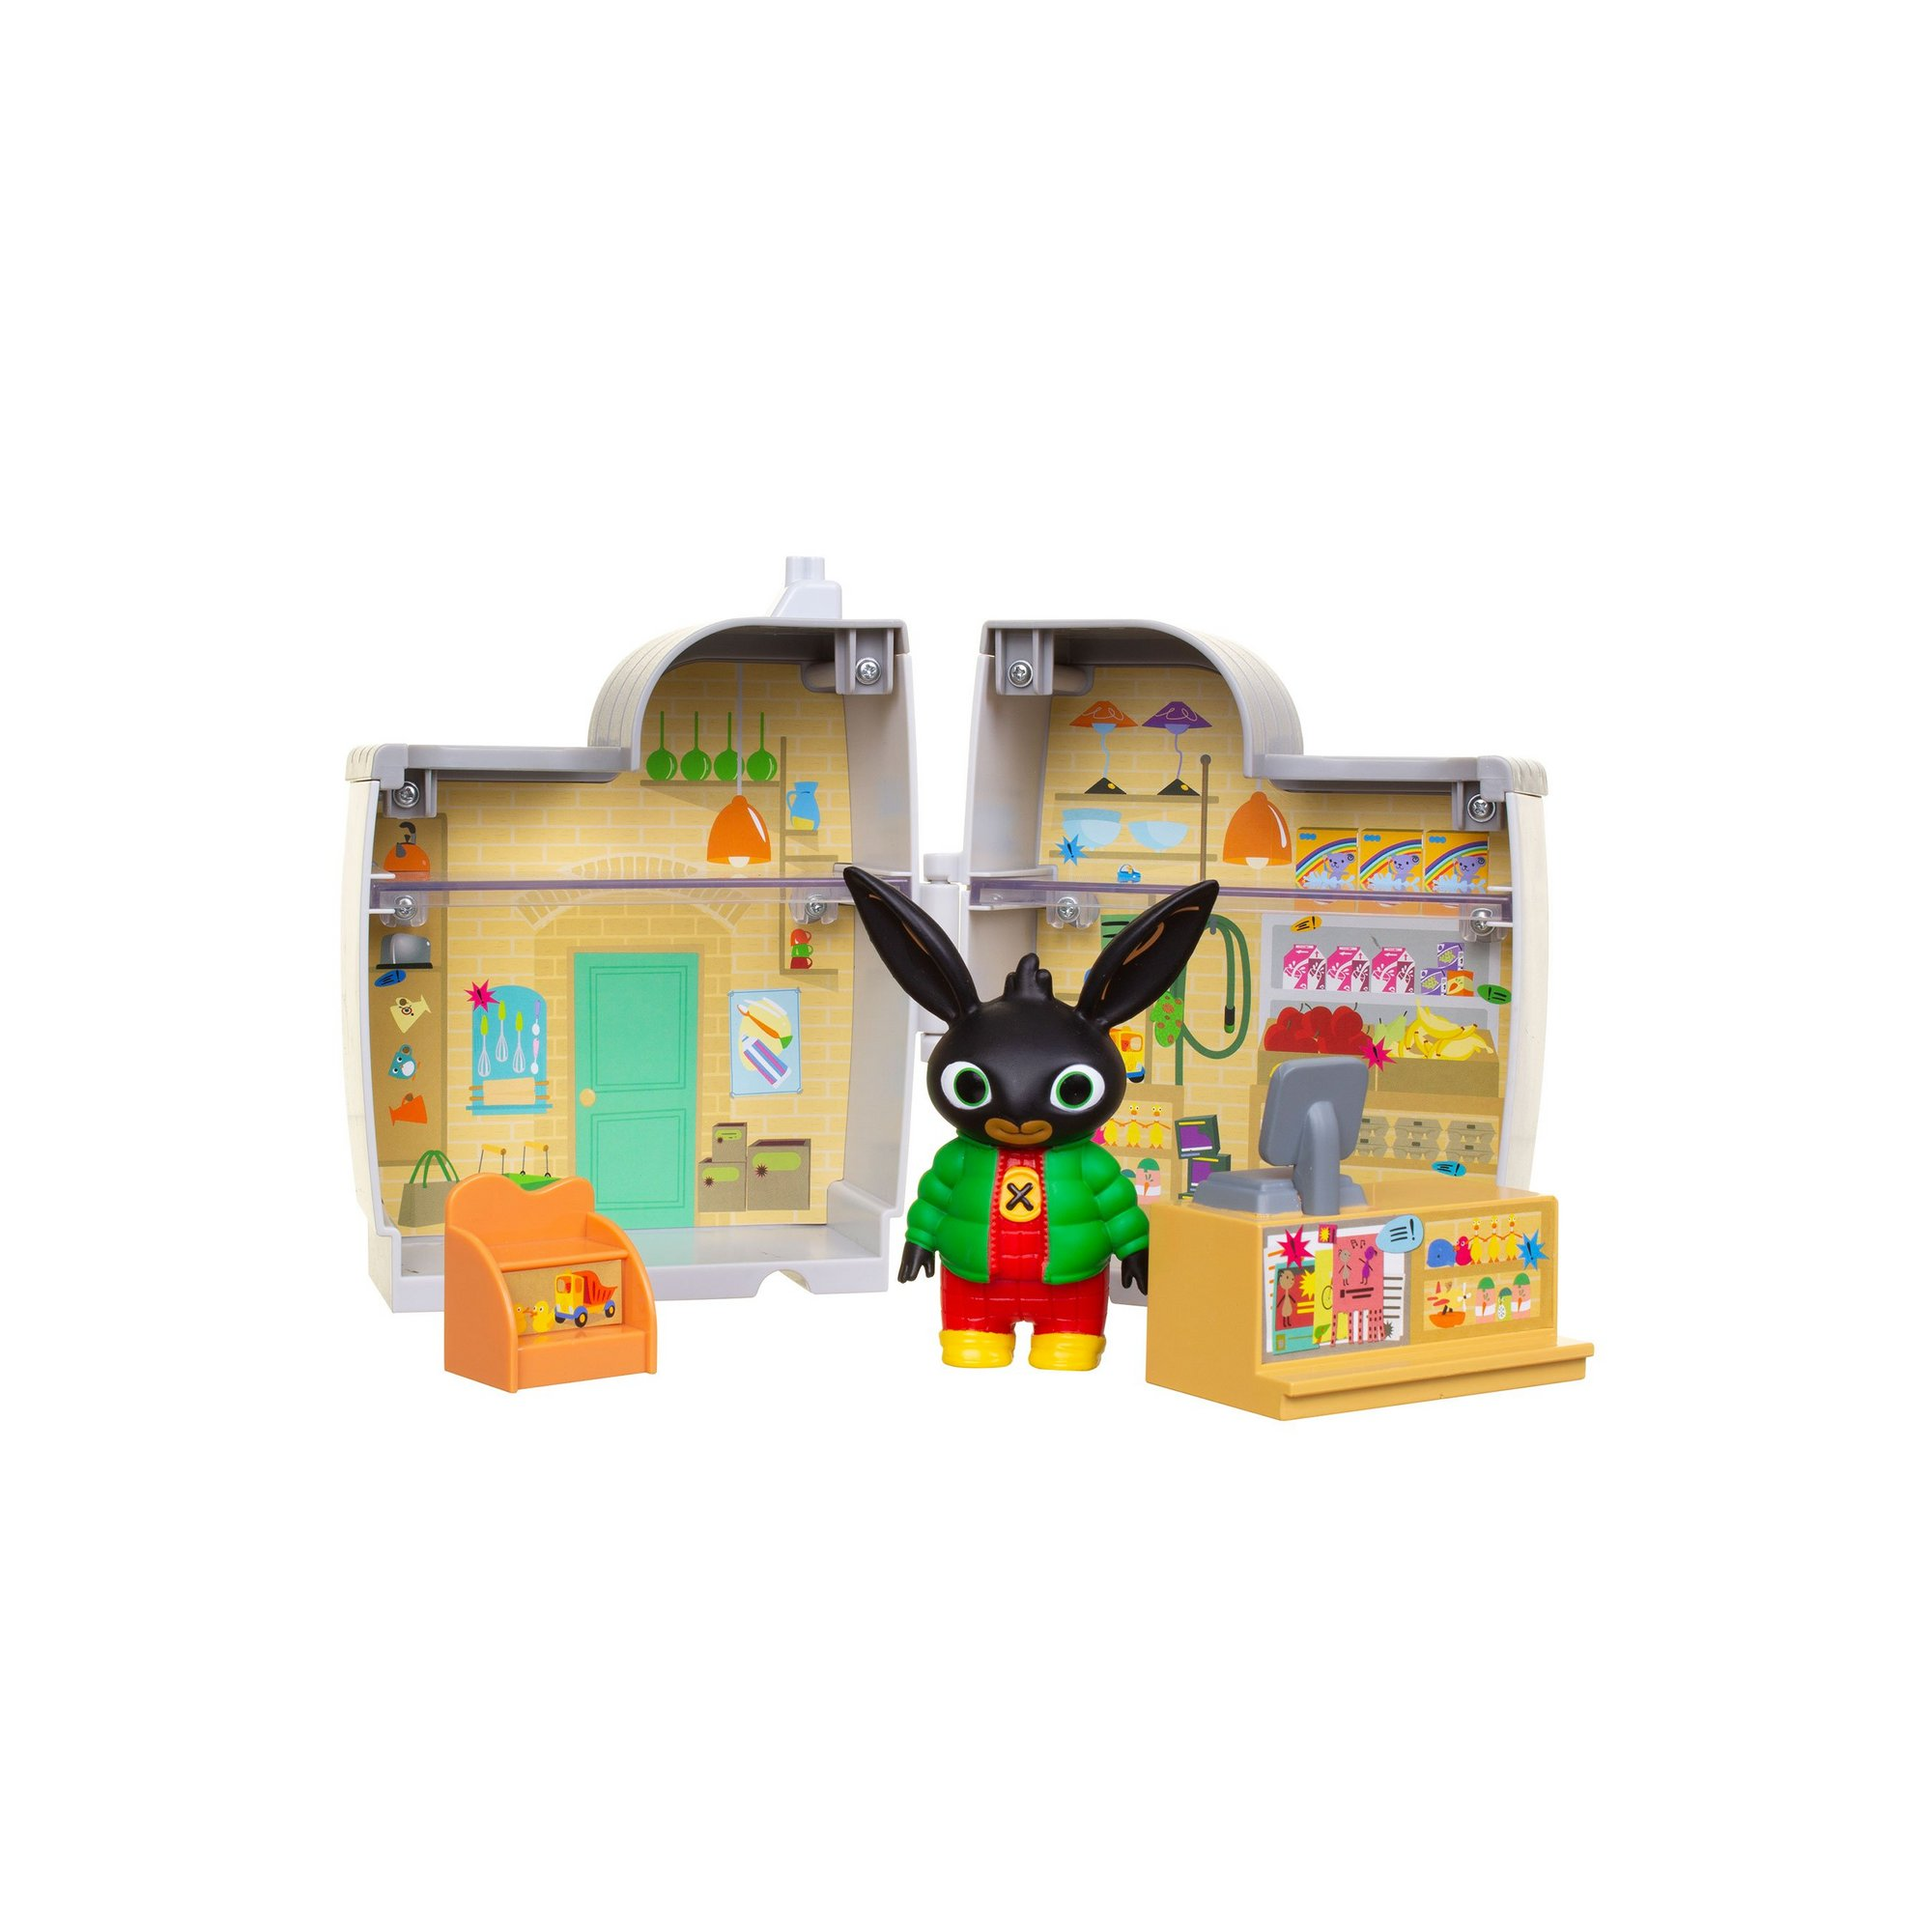 Image of Bing Mini House Padgets Shop Playset